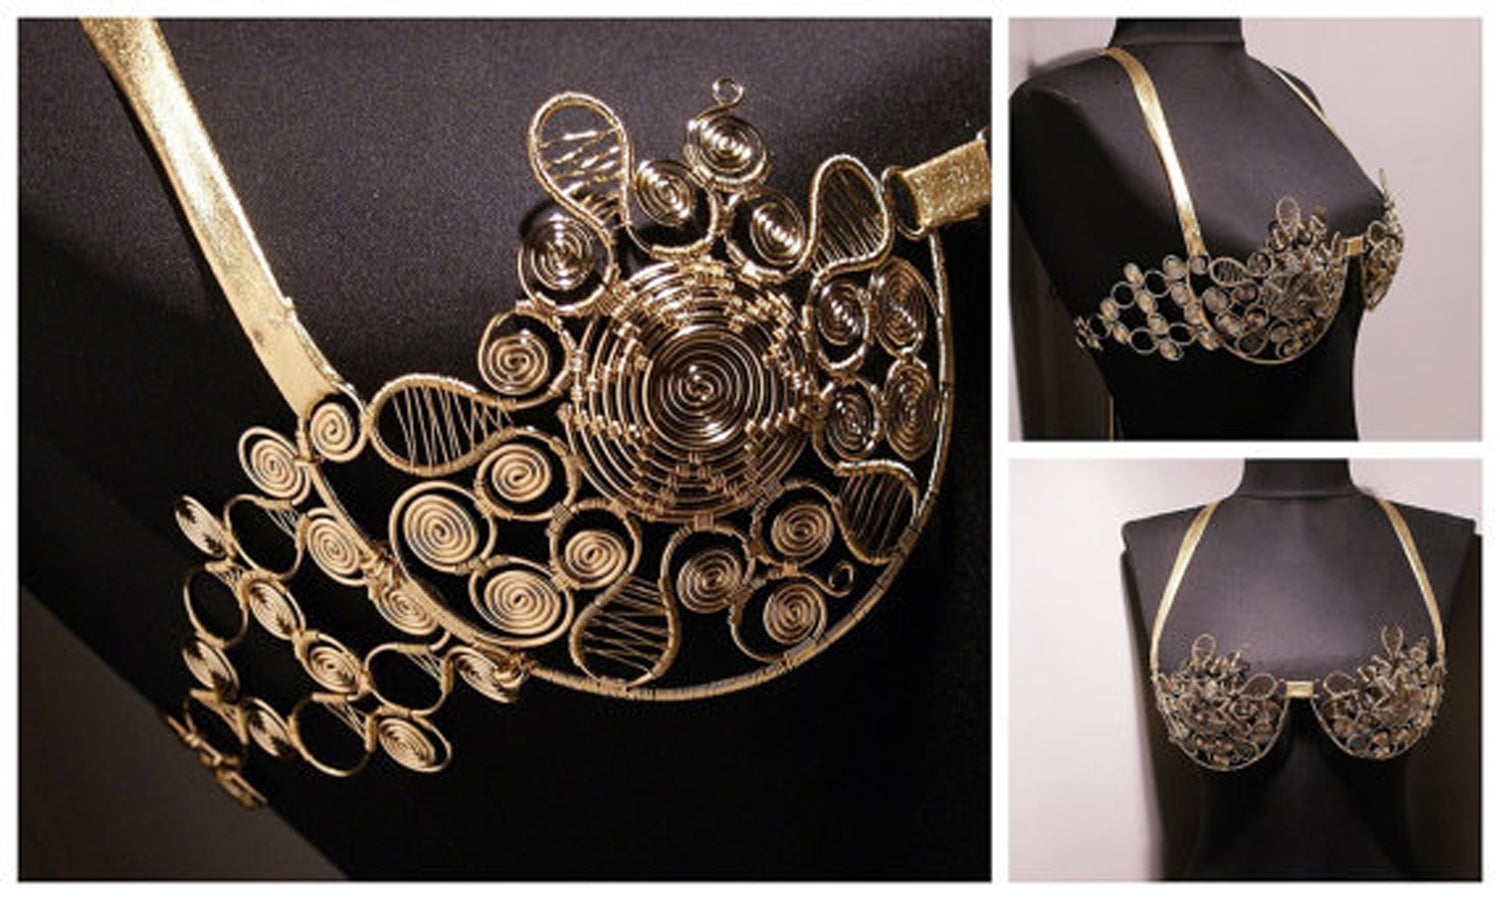 Handmade Metal Bra, Wire Wrapped Metal Goddess Bra - Babazen